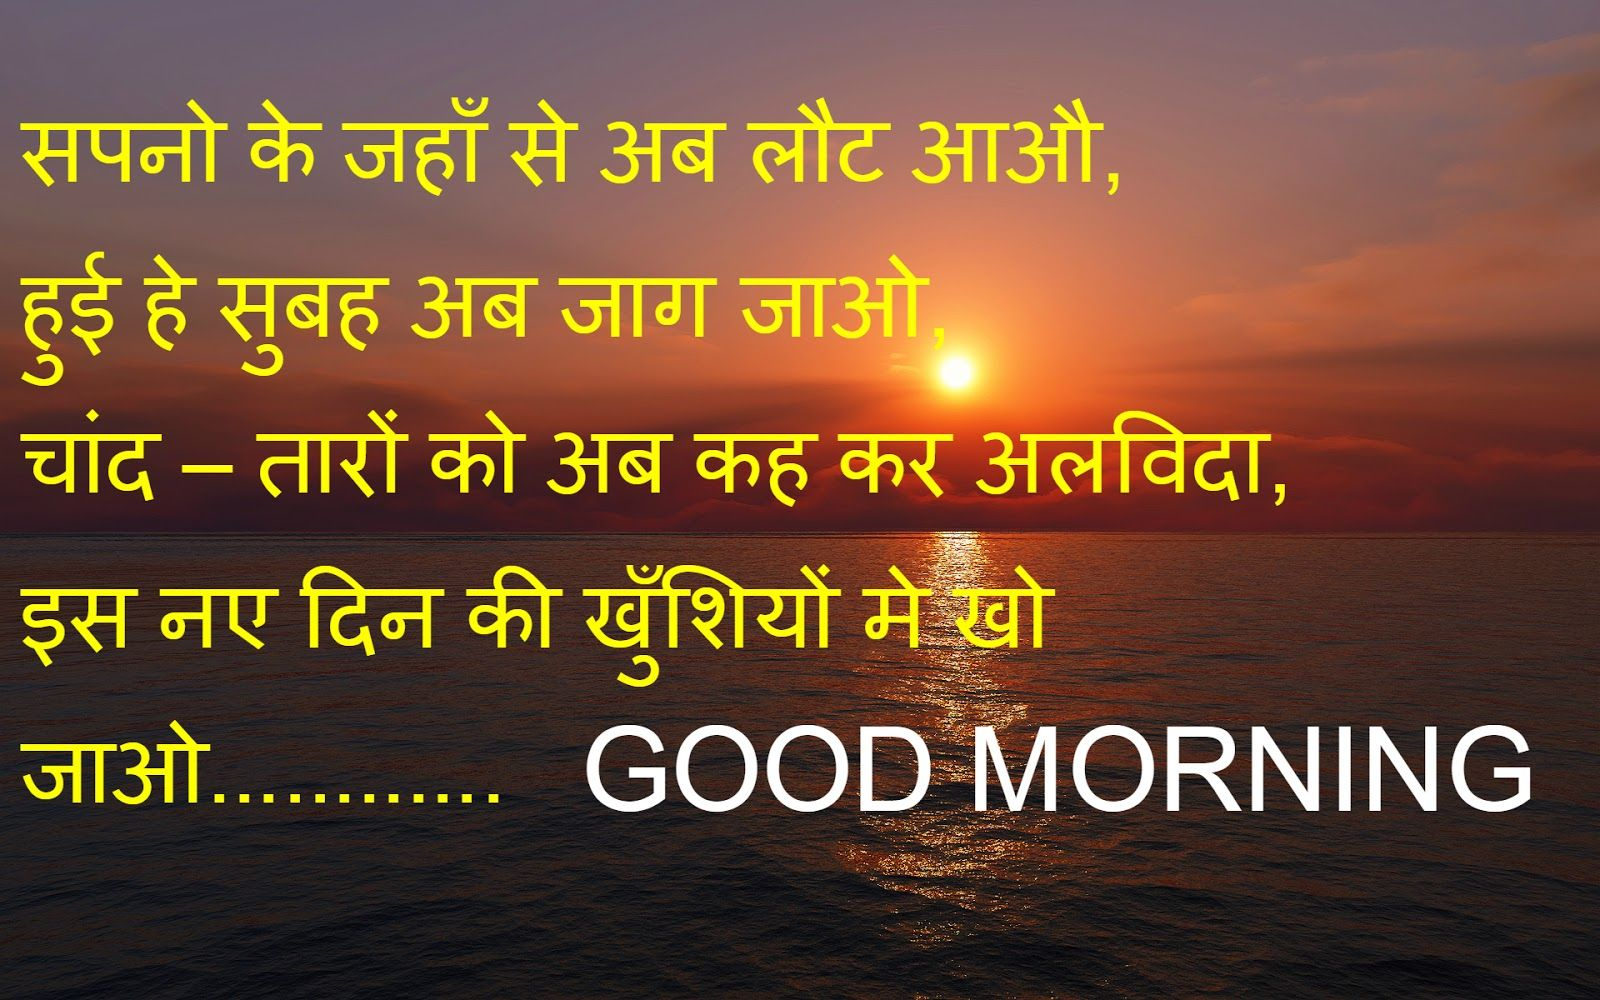 Good Morning Shayari Hd Wallpapers Hd Wallpapers Good